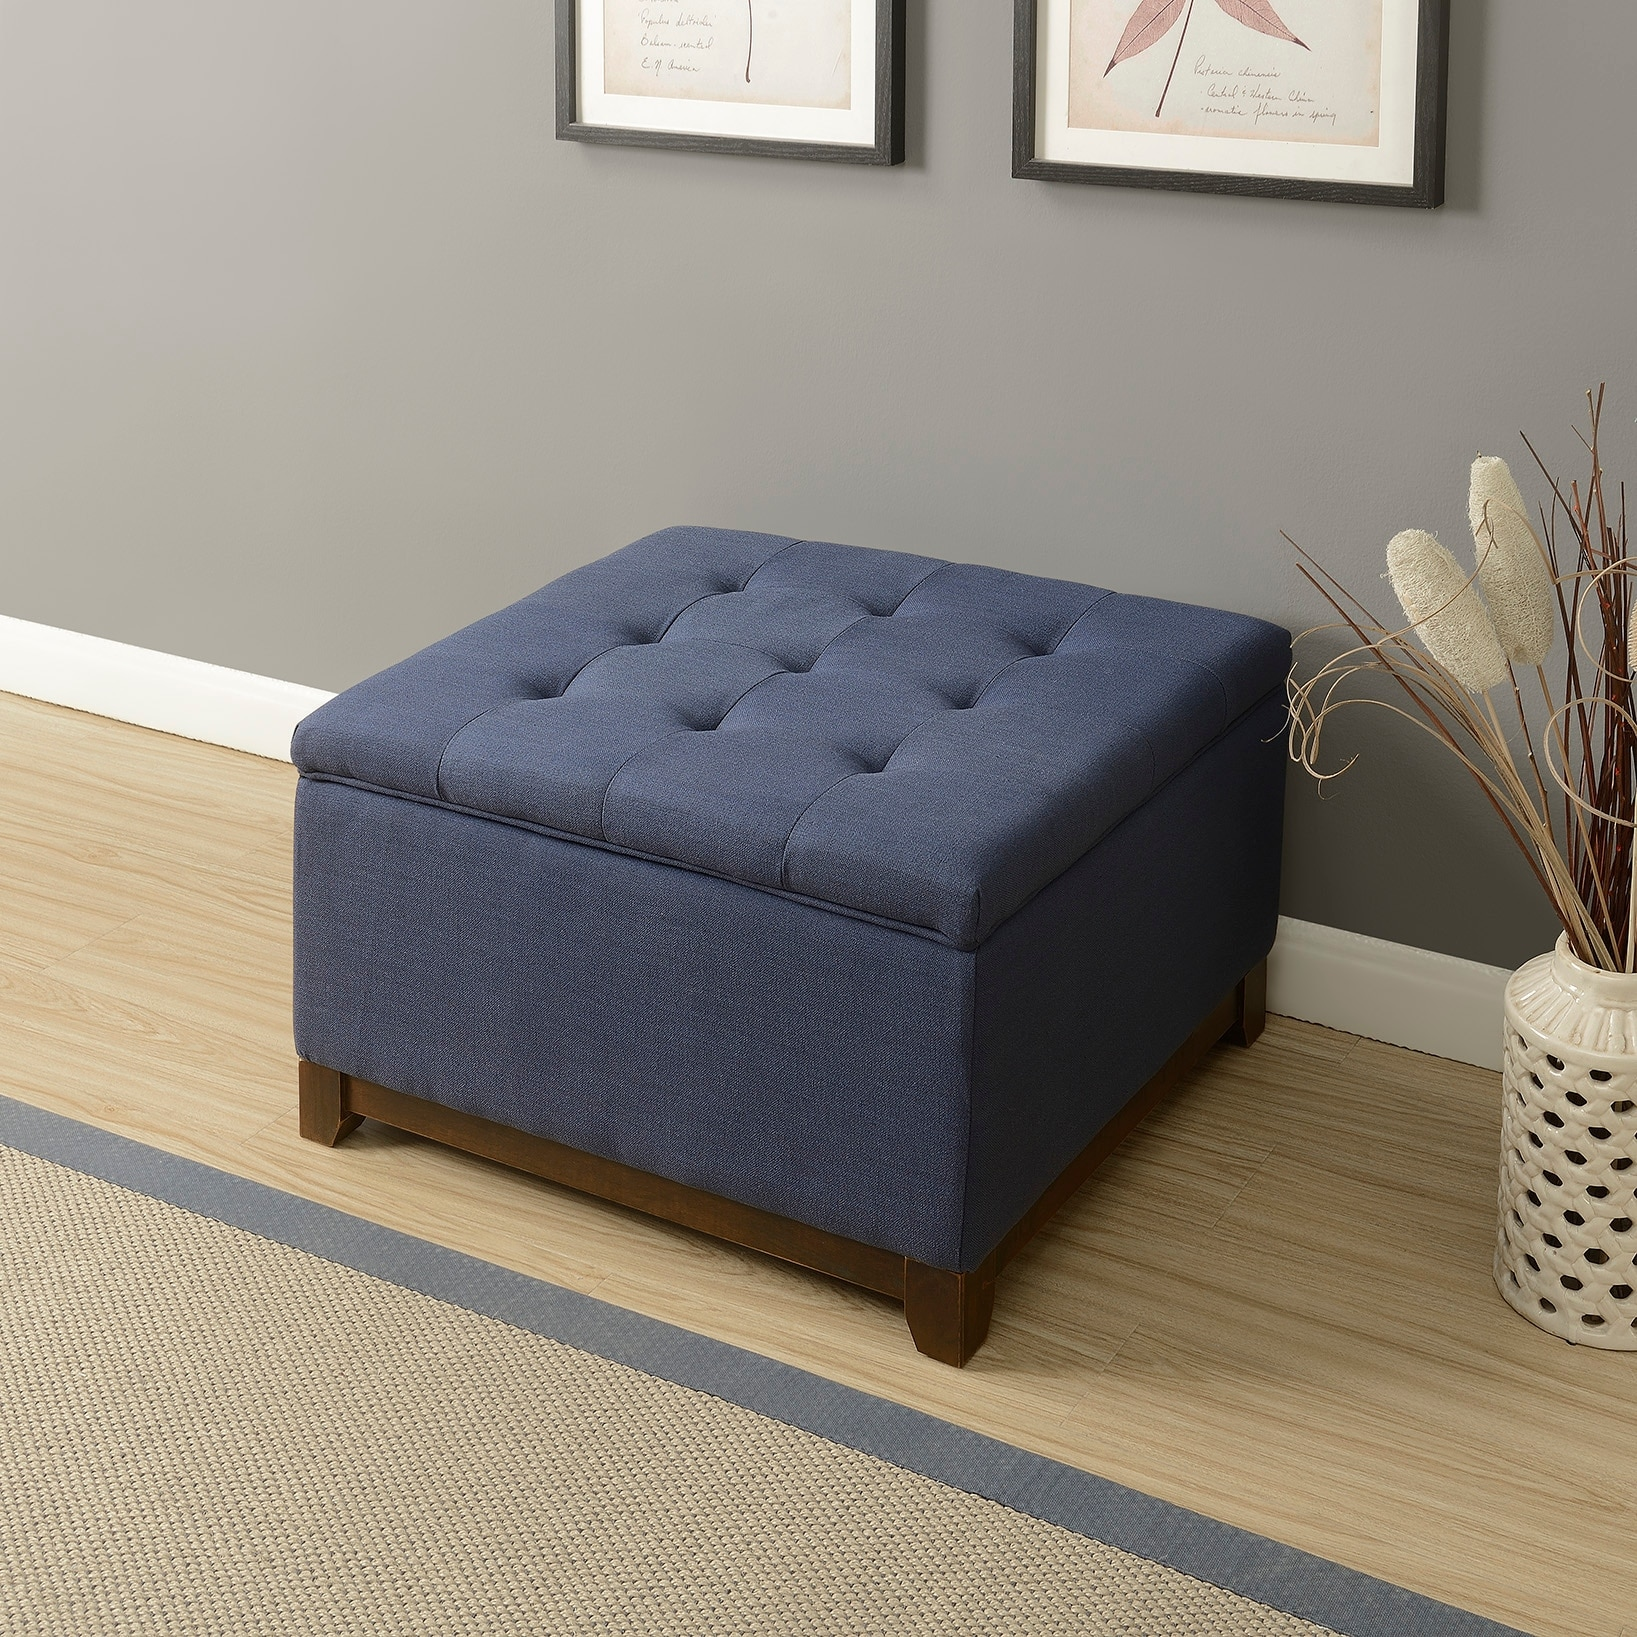 tufted amazon beige mission fabric com best kitchen dp ottoman with storage dining bench selling